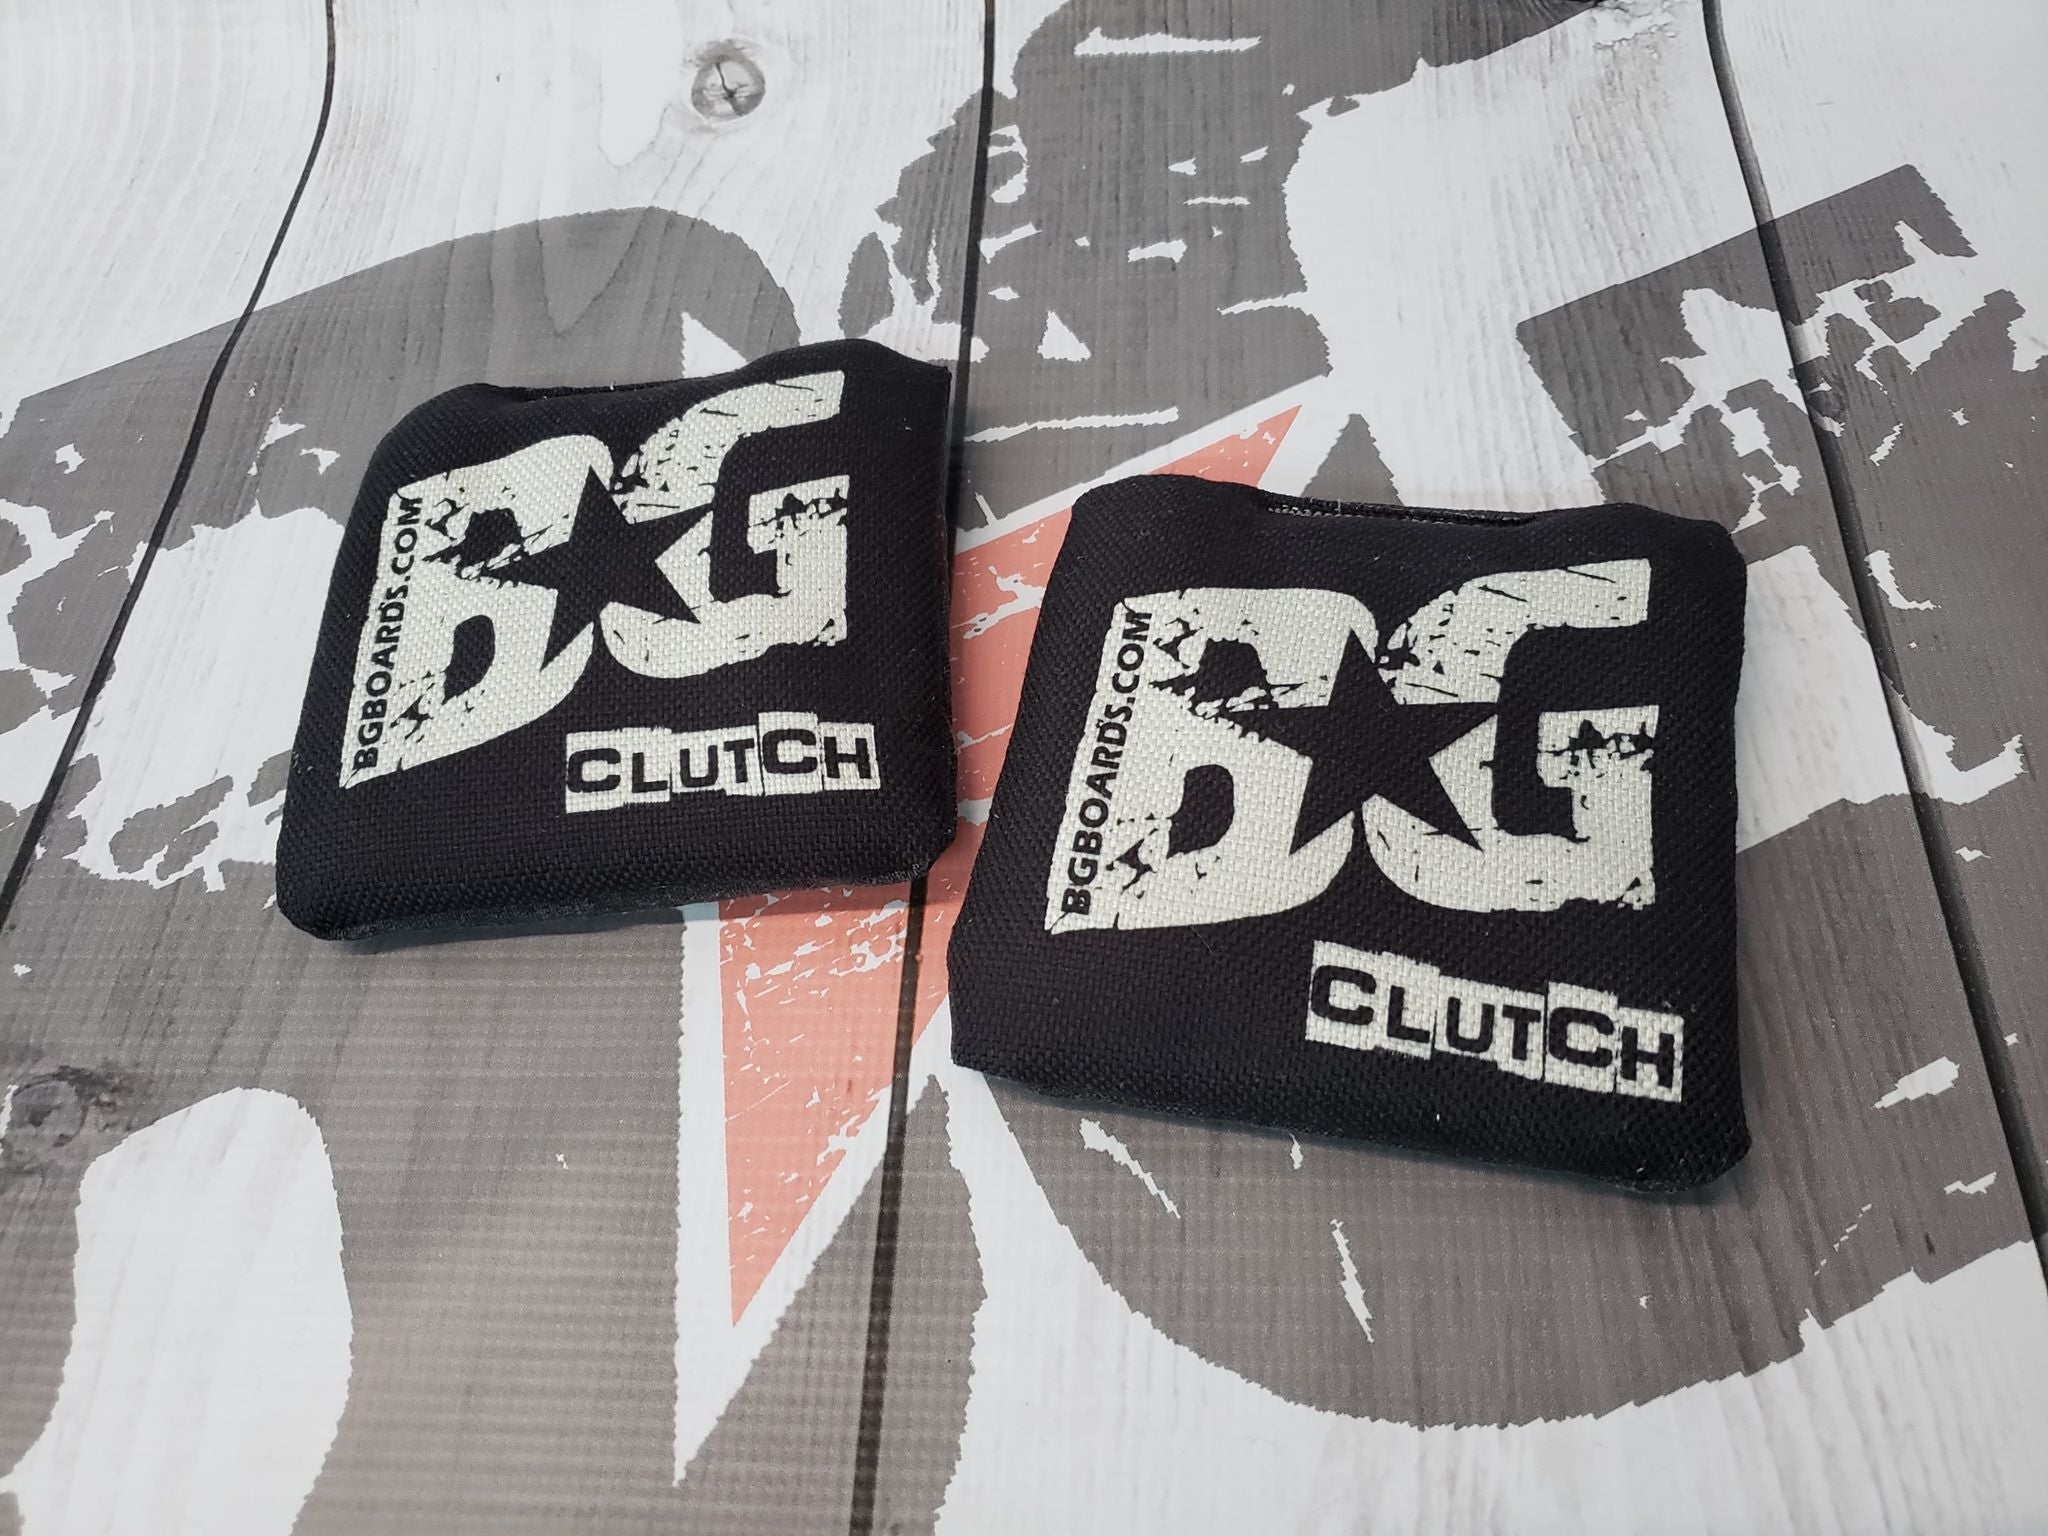 2018-2019 ACL Approved BG CLUTCH regulation cornhole bags - HALF SET OF 4 BAGS